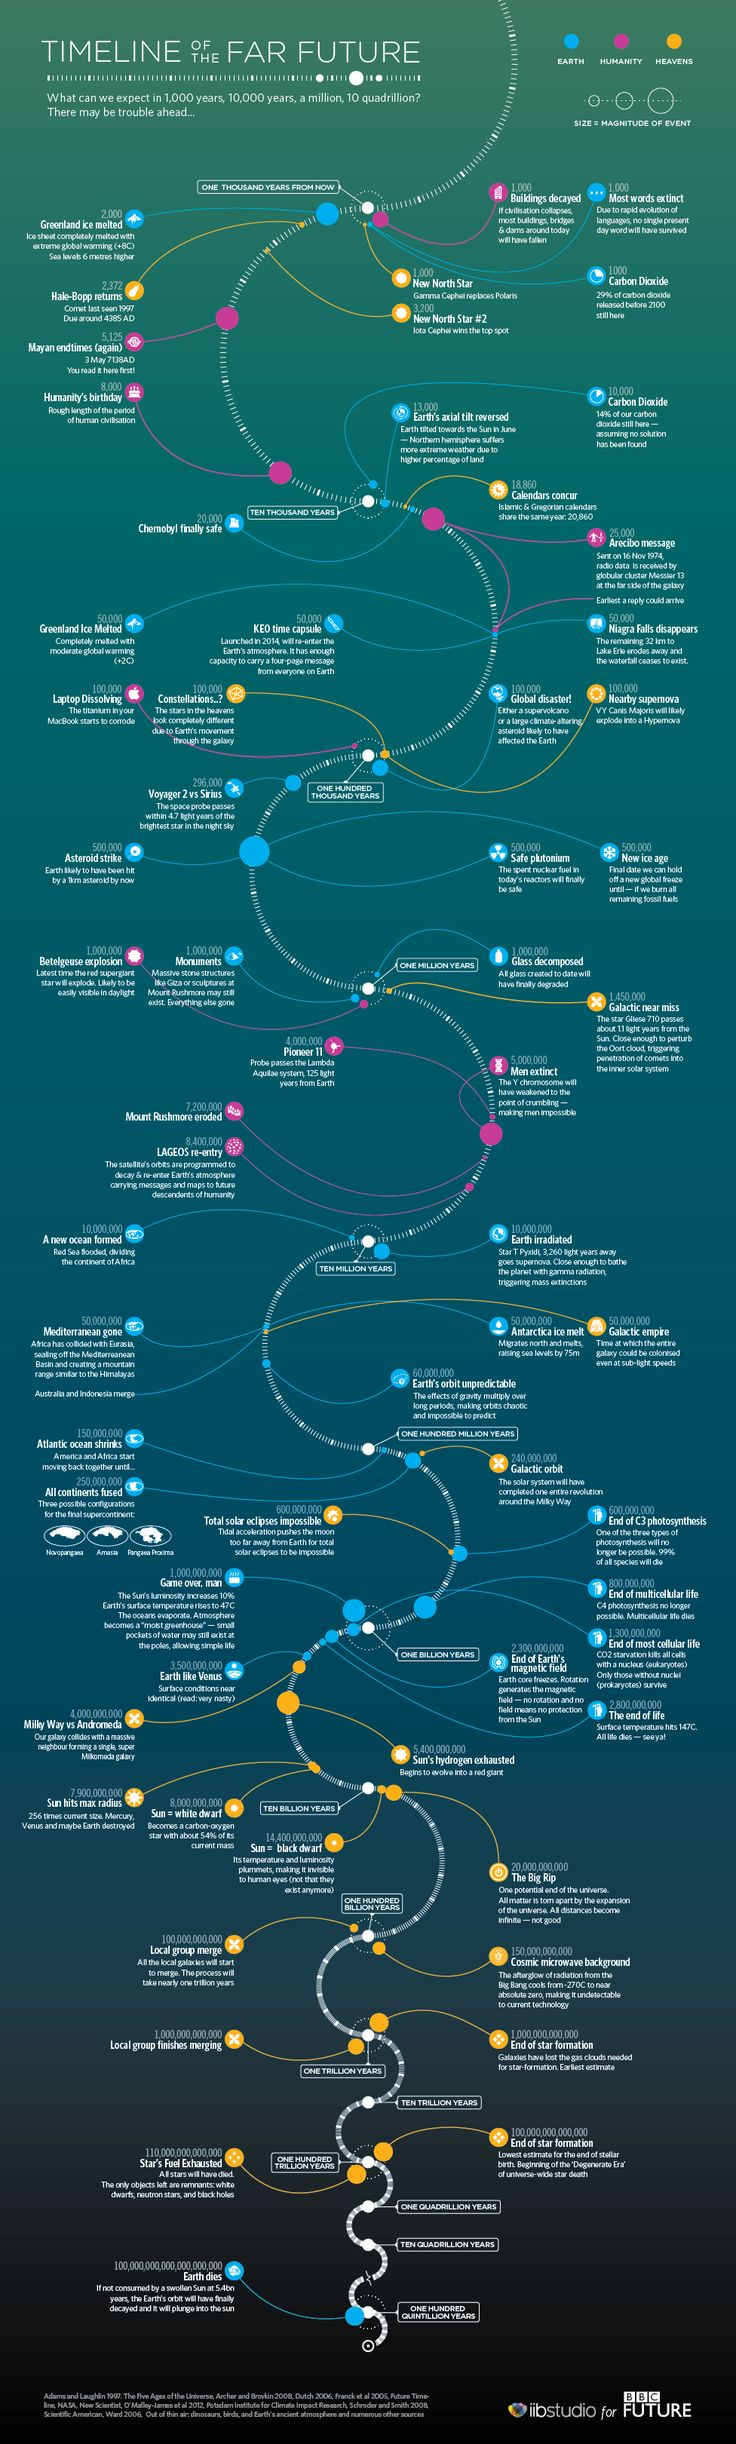 BBC - Future - Science & Environment - Timeline of the far future